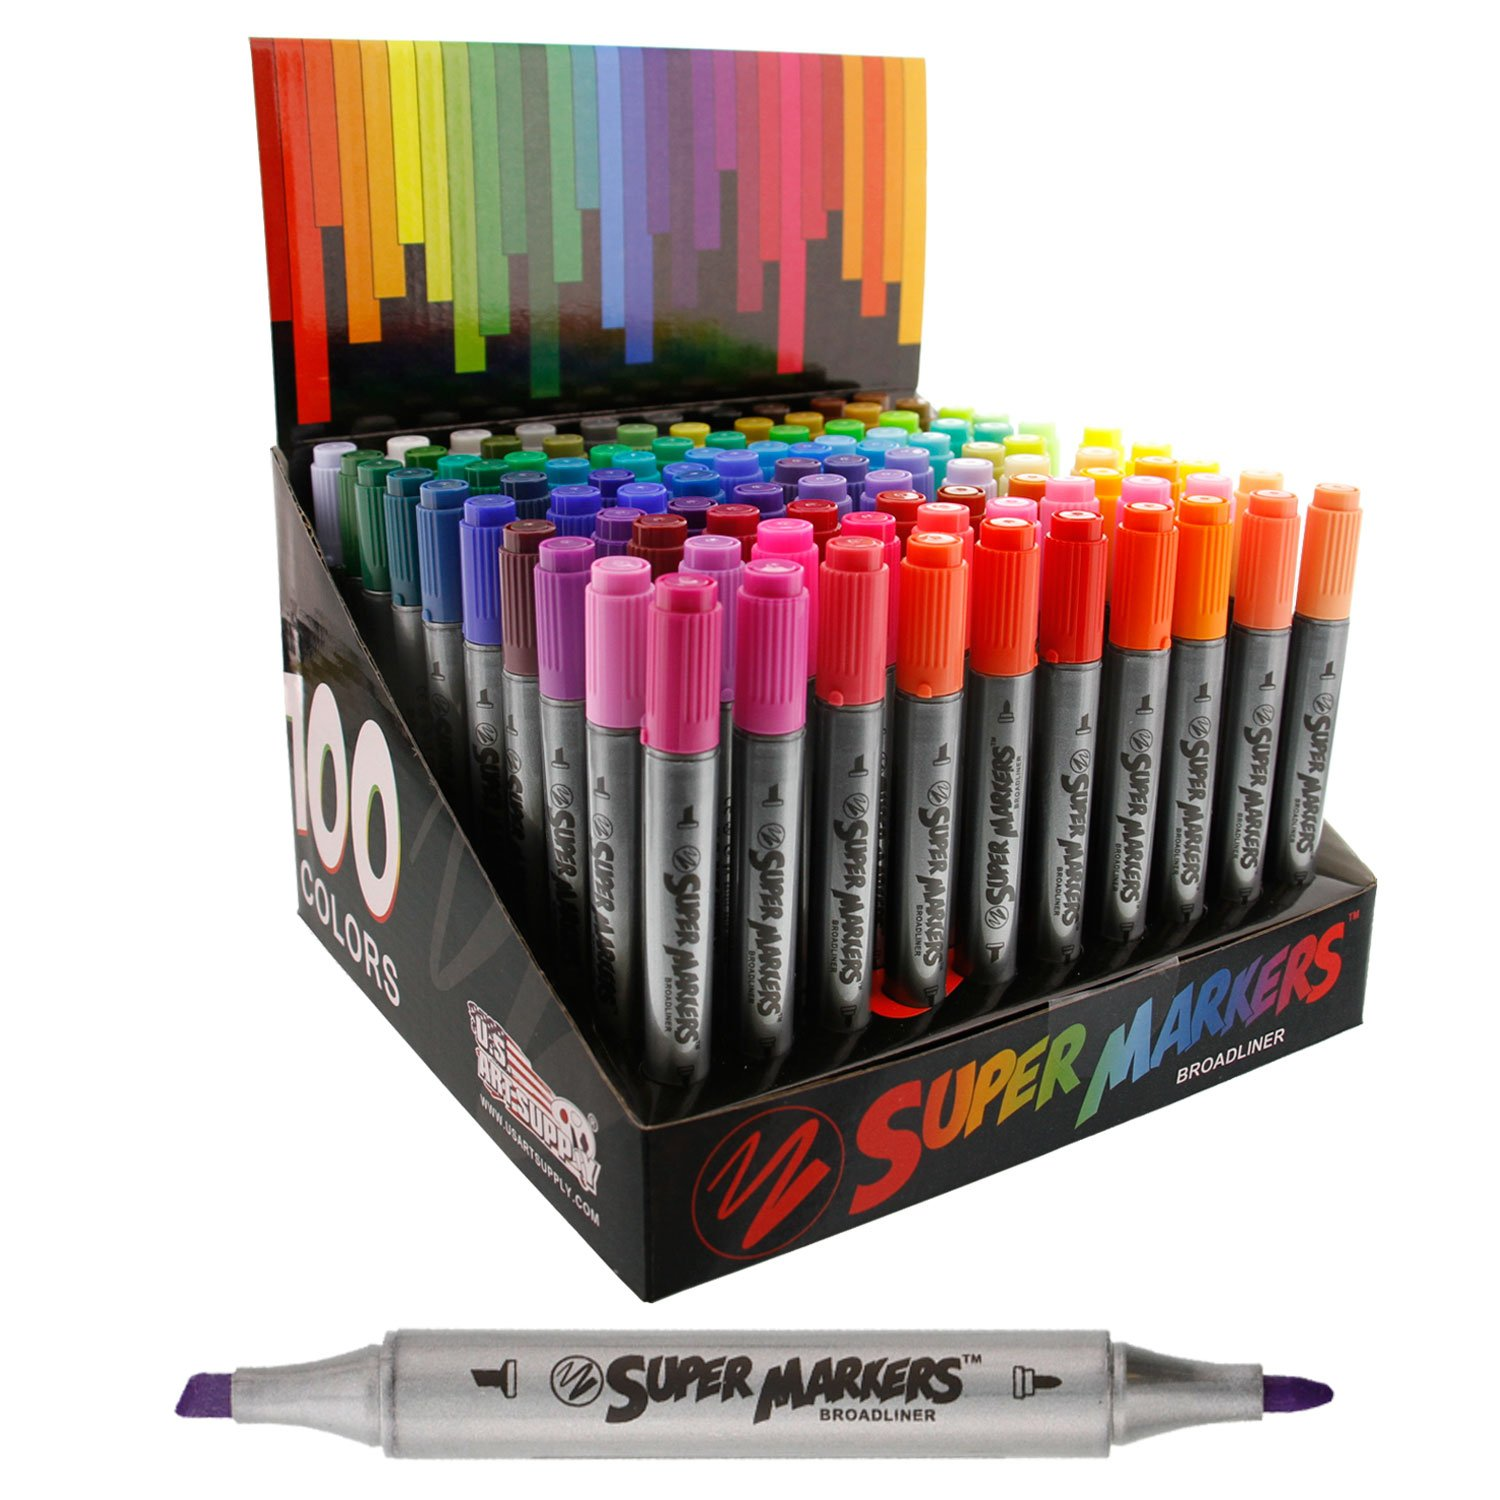 Super Markers Set with 100 Unique Marker Colors - Universal Bullet Point Tips for Fine and Bullet Lines - Bold Vibrant Colors - Includes a Marker Storage Rack - 100% Satisfaction Guarantee US Art Supply SM-891